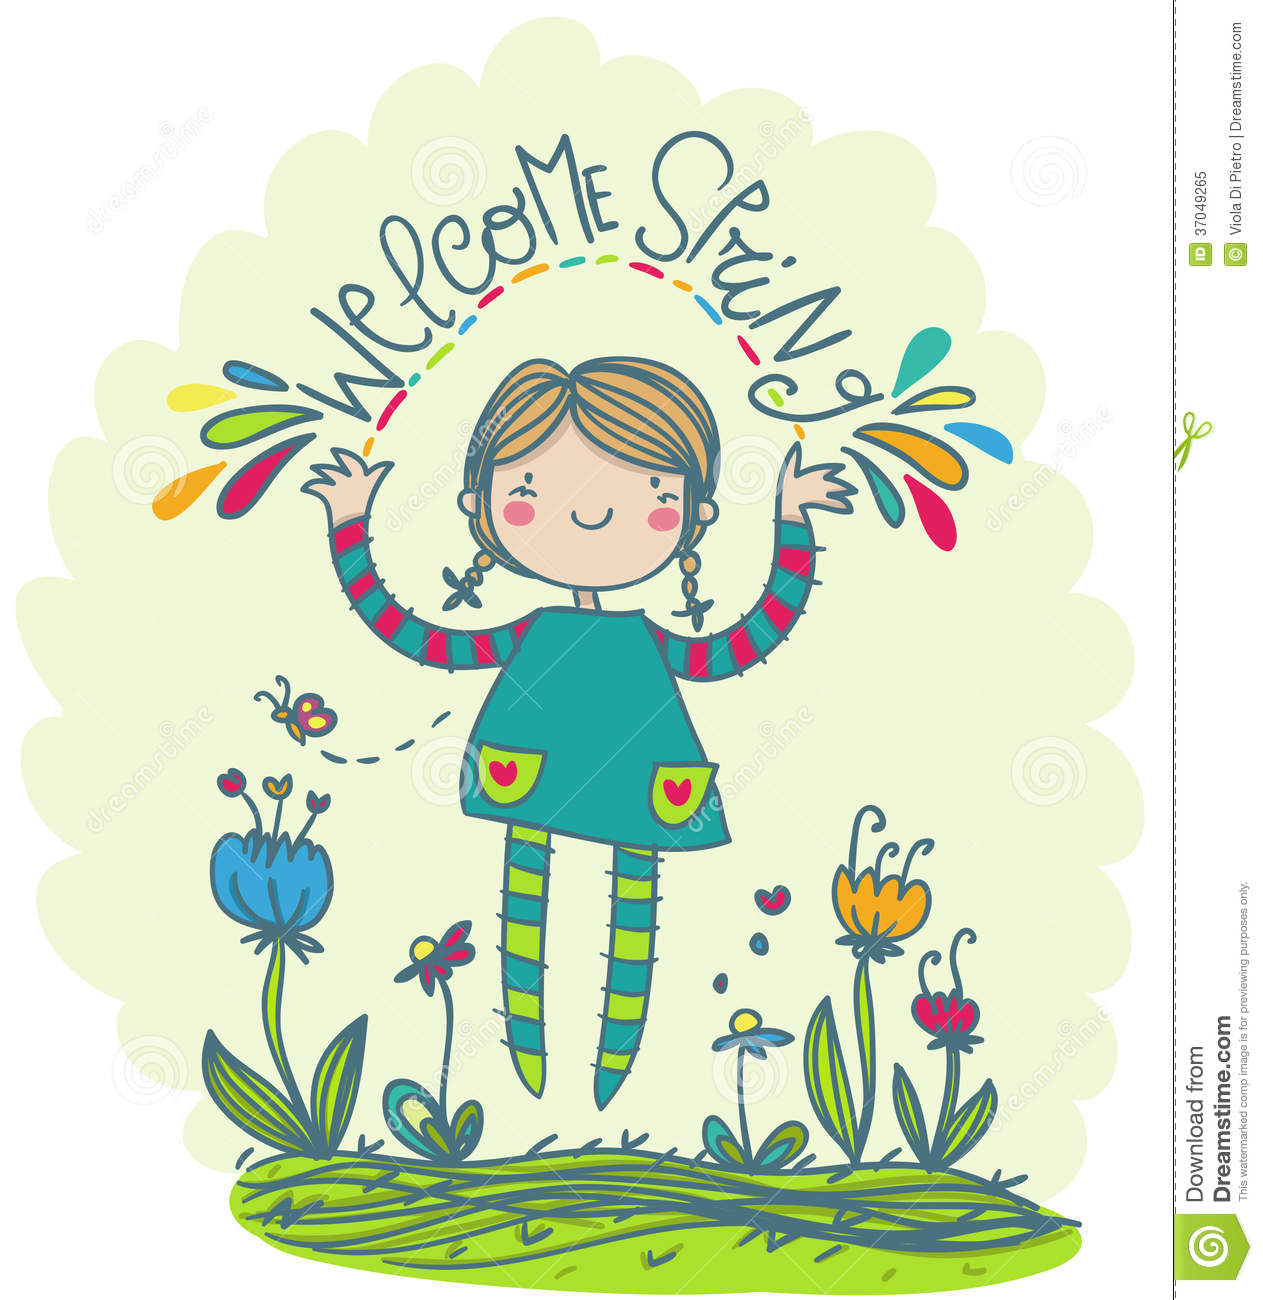 welcome spring funny illustration royalty free stock photo image